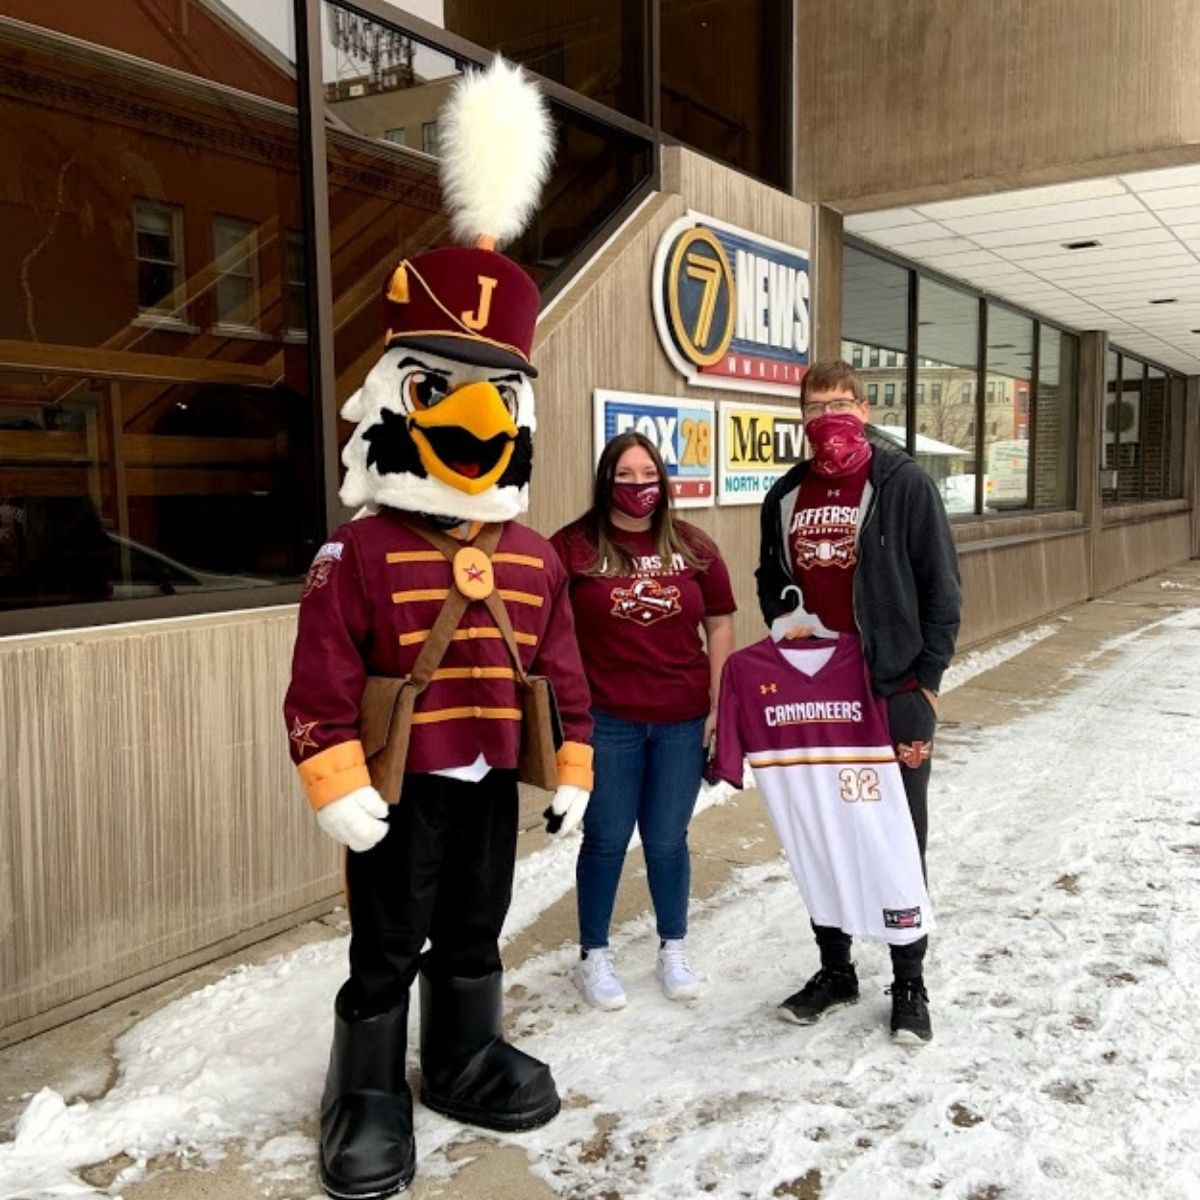 Bald Eagle in a Military Cannoneer Uniform with two student athletes standing outside television station